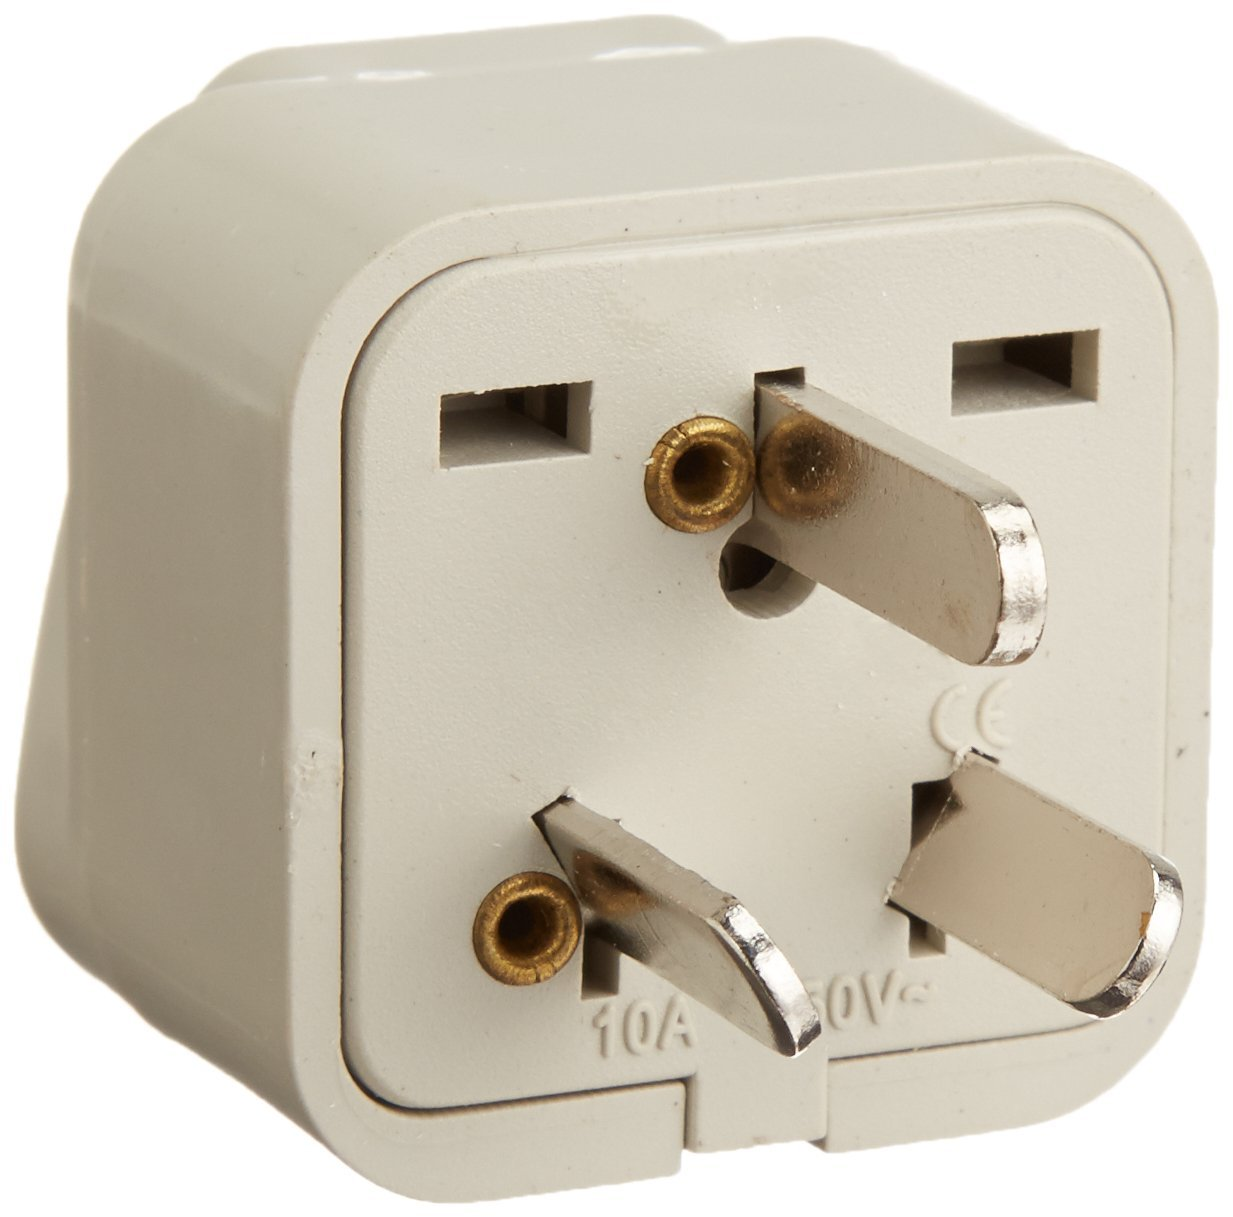 If you have lots of electronic toys, you will want to bring a few of these adapters .